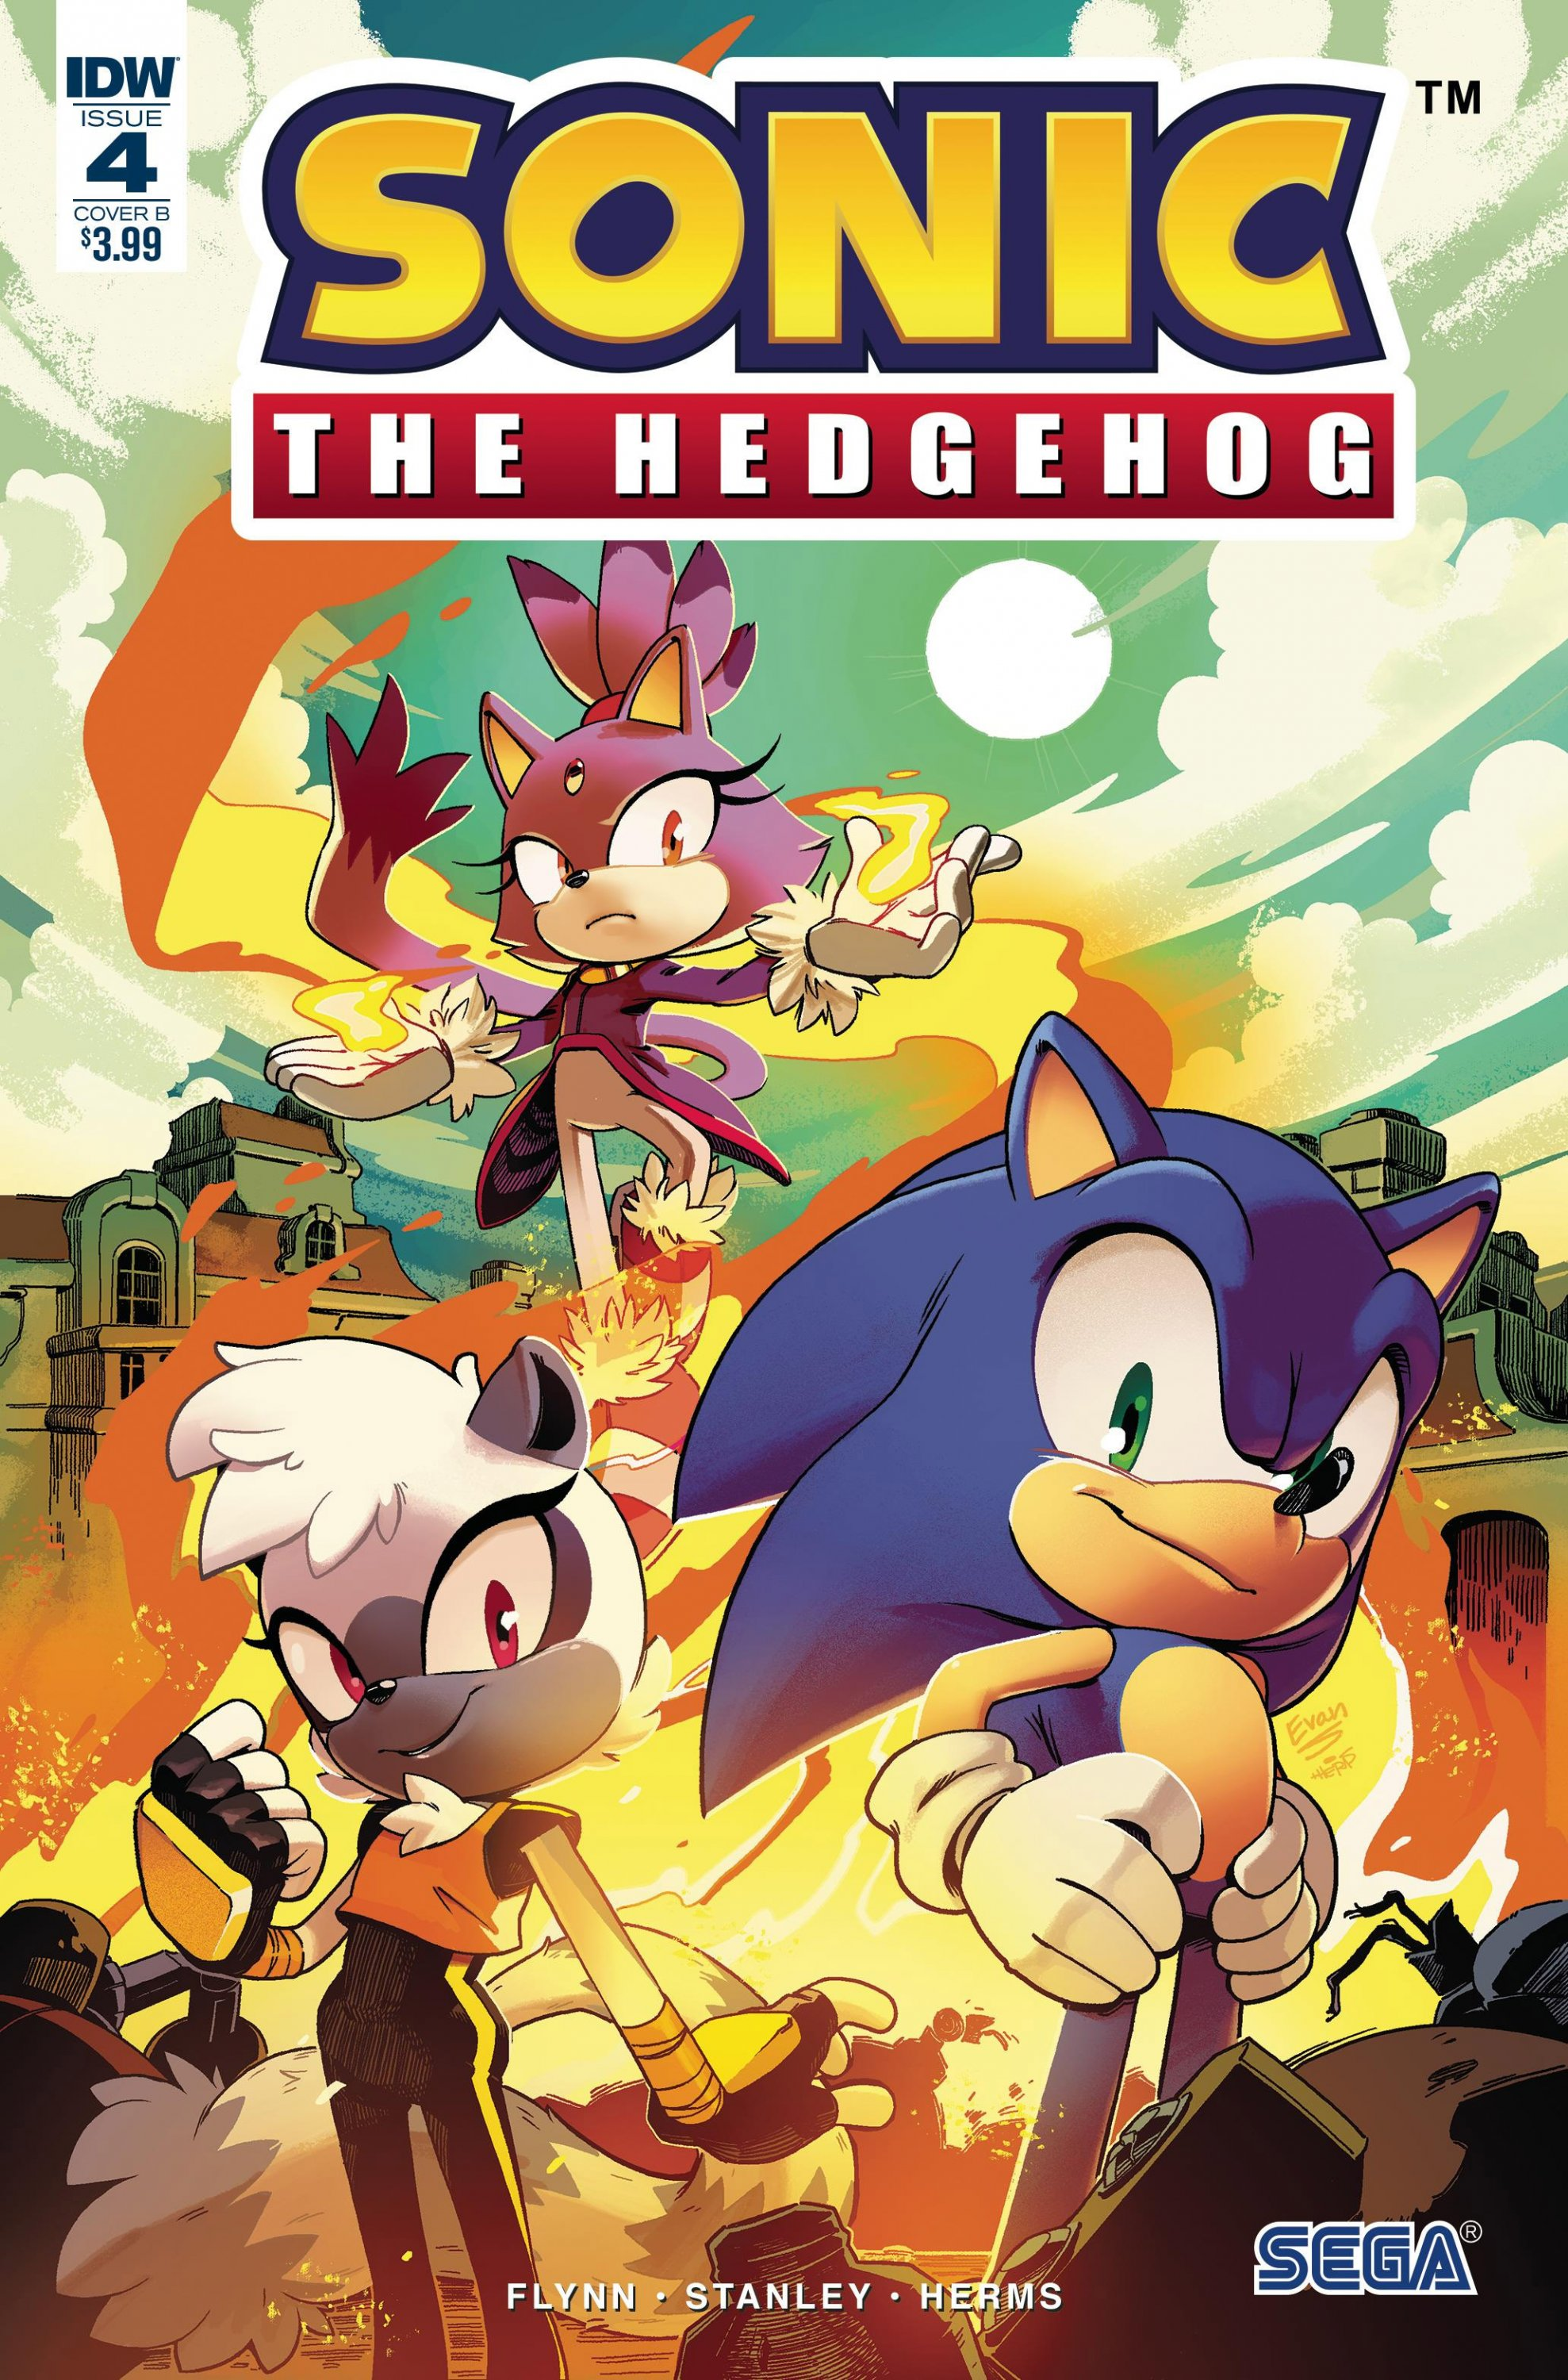 Sonic the Hedgehog 004 (April 2018) (cover b)